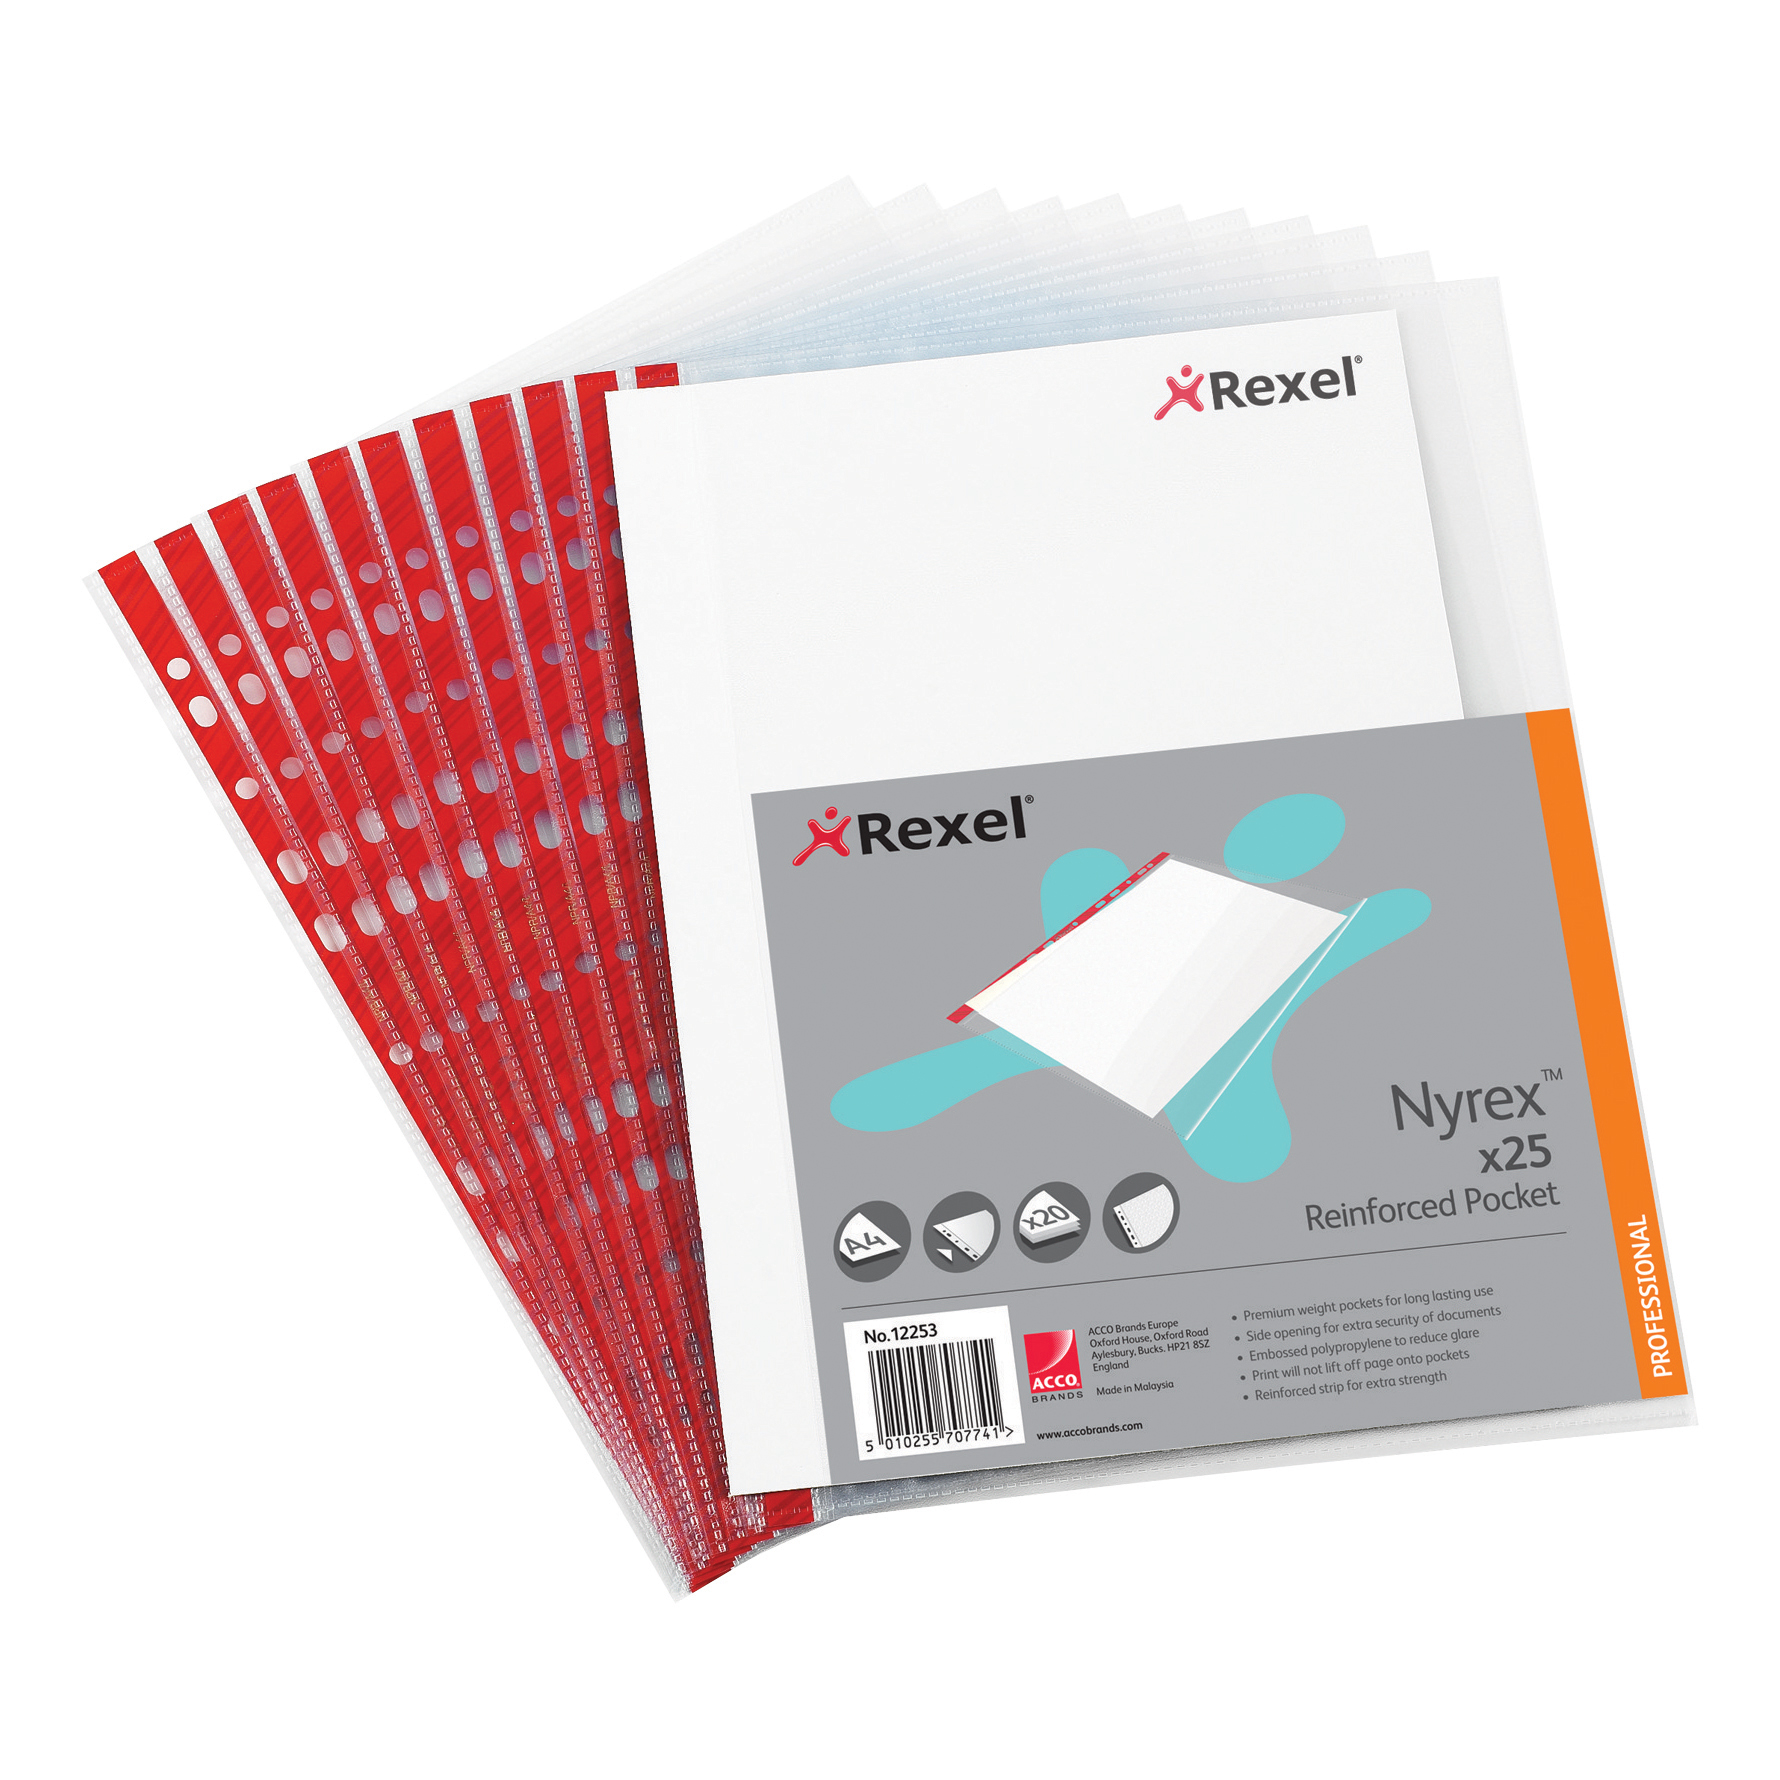 Rexel Nyrex Pocket Reinforced Red Strip Side-opening A4 Clear Ref 12253 [Pack of 25] [COMPETITION]